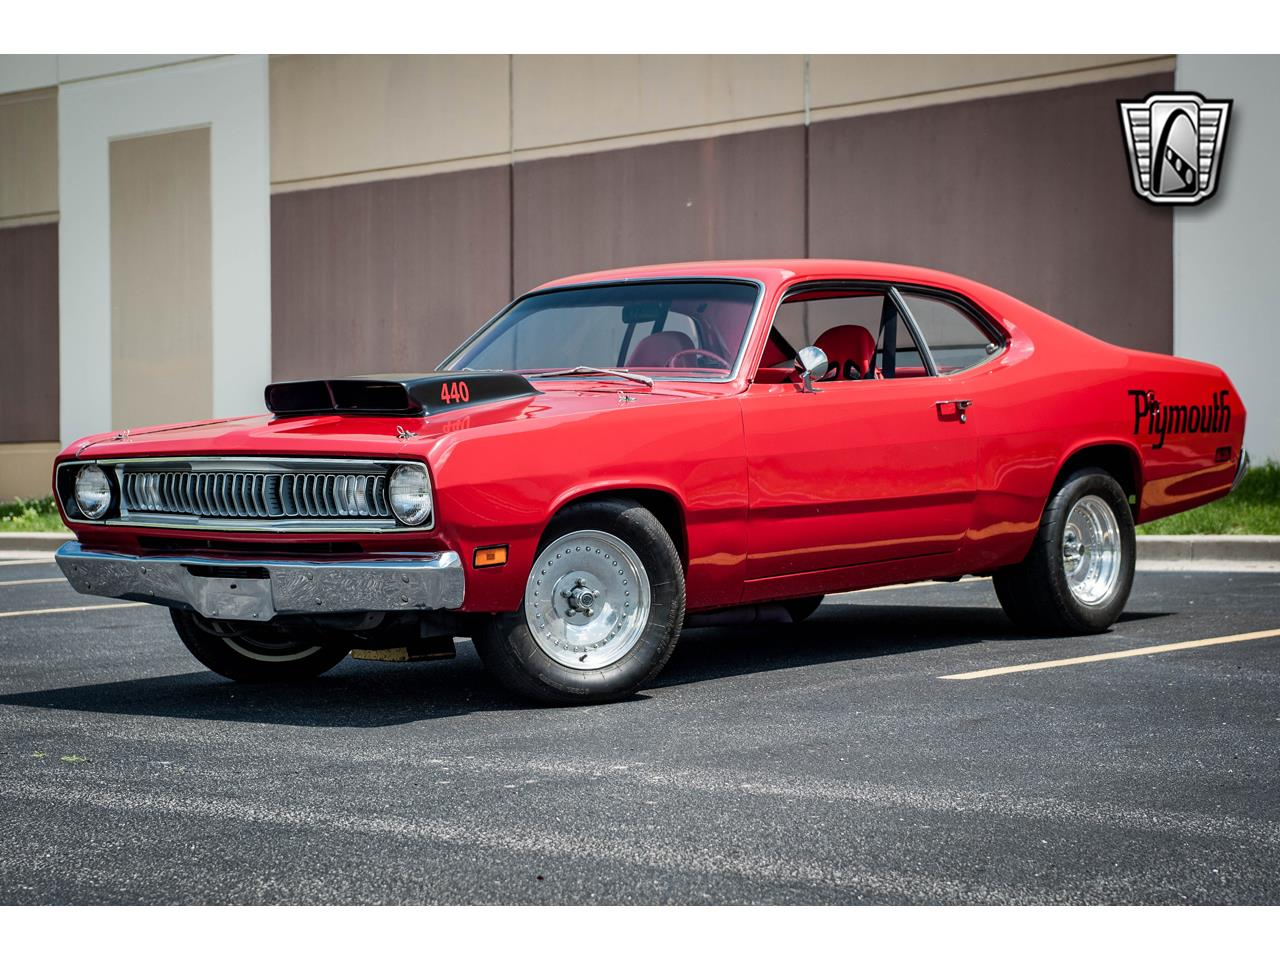 Large Picture of Classic 1971 Plymouth Duster located in Illinois Offered by Gateway Classic Cars - St. Louis - QB9U